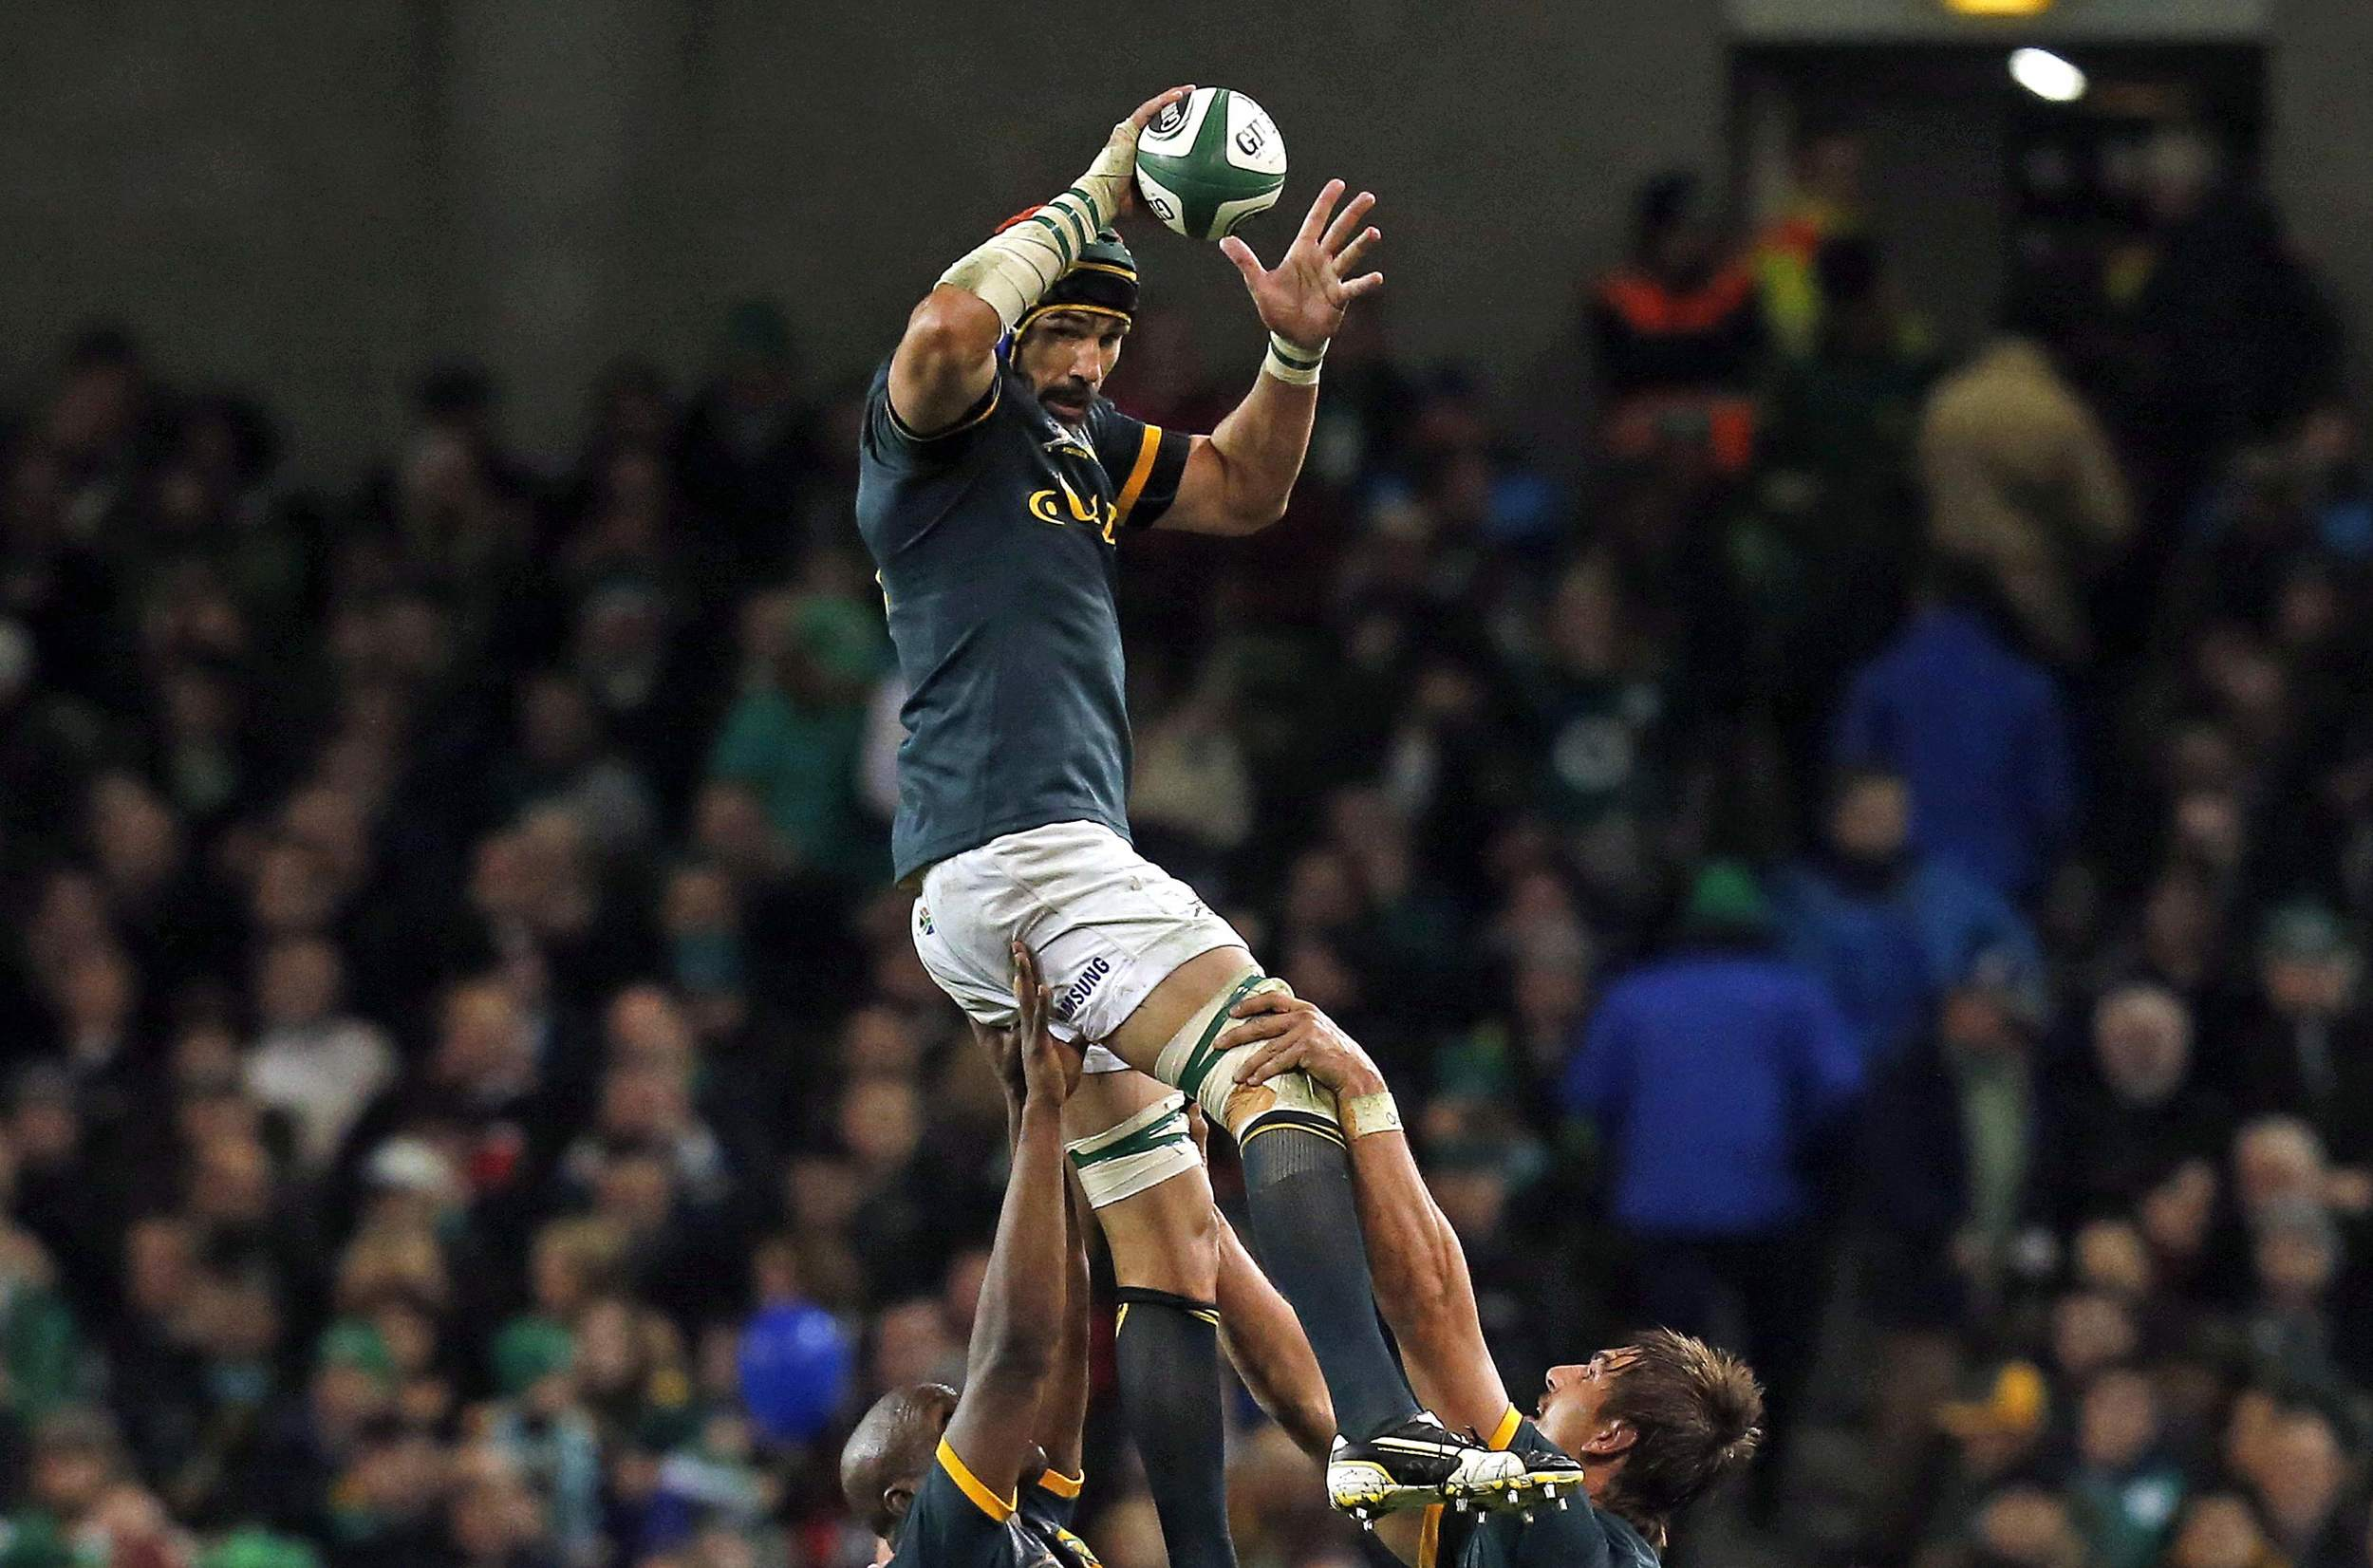 Victor Matfield wins a line out for South Africaagainst Ireland during their international test match at the Aviva Stadium in Dublin November 8, 2014. Despite his age, Matfield remains one of the world's leading locks. Image supplied by Action Imag es/Cathal McNaughton